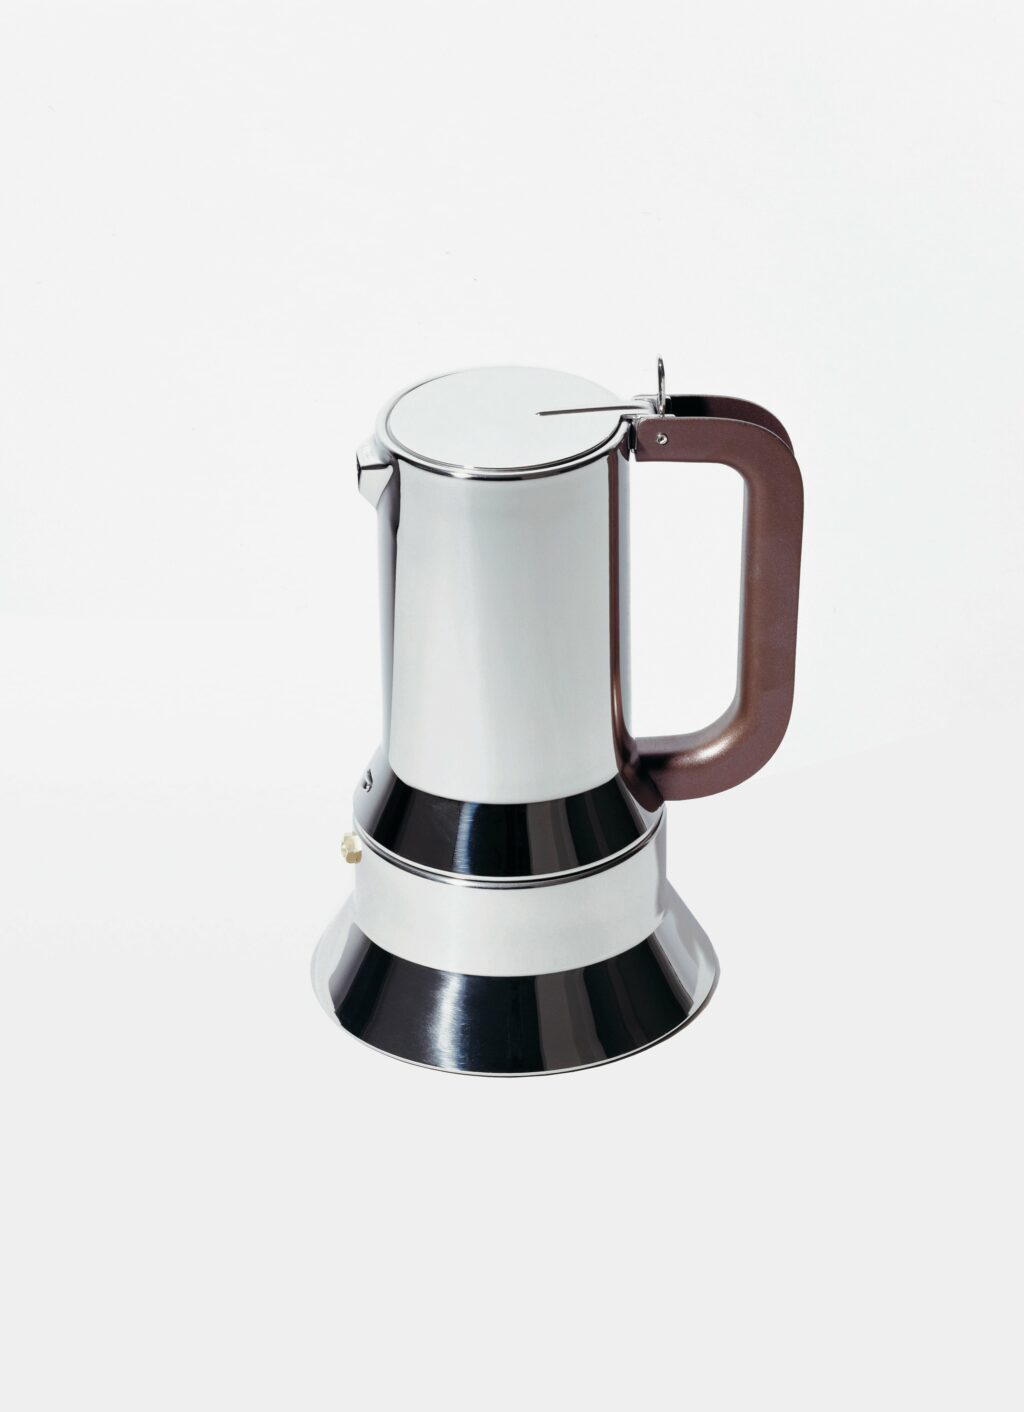 Alessi - 9090 - Richard Sapper - Espresso Coffee Maker - 3 cups - Stainless Steel